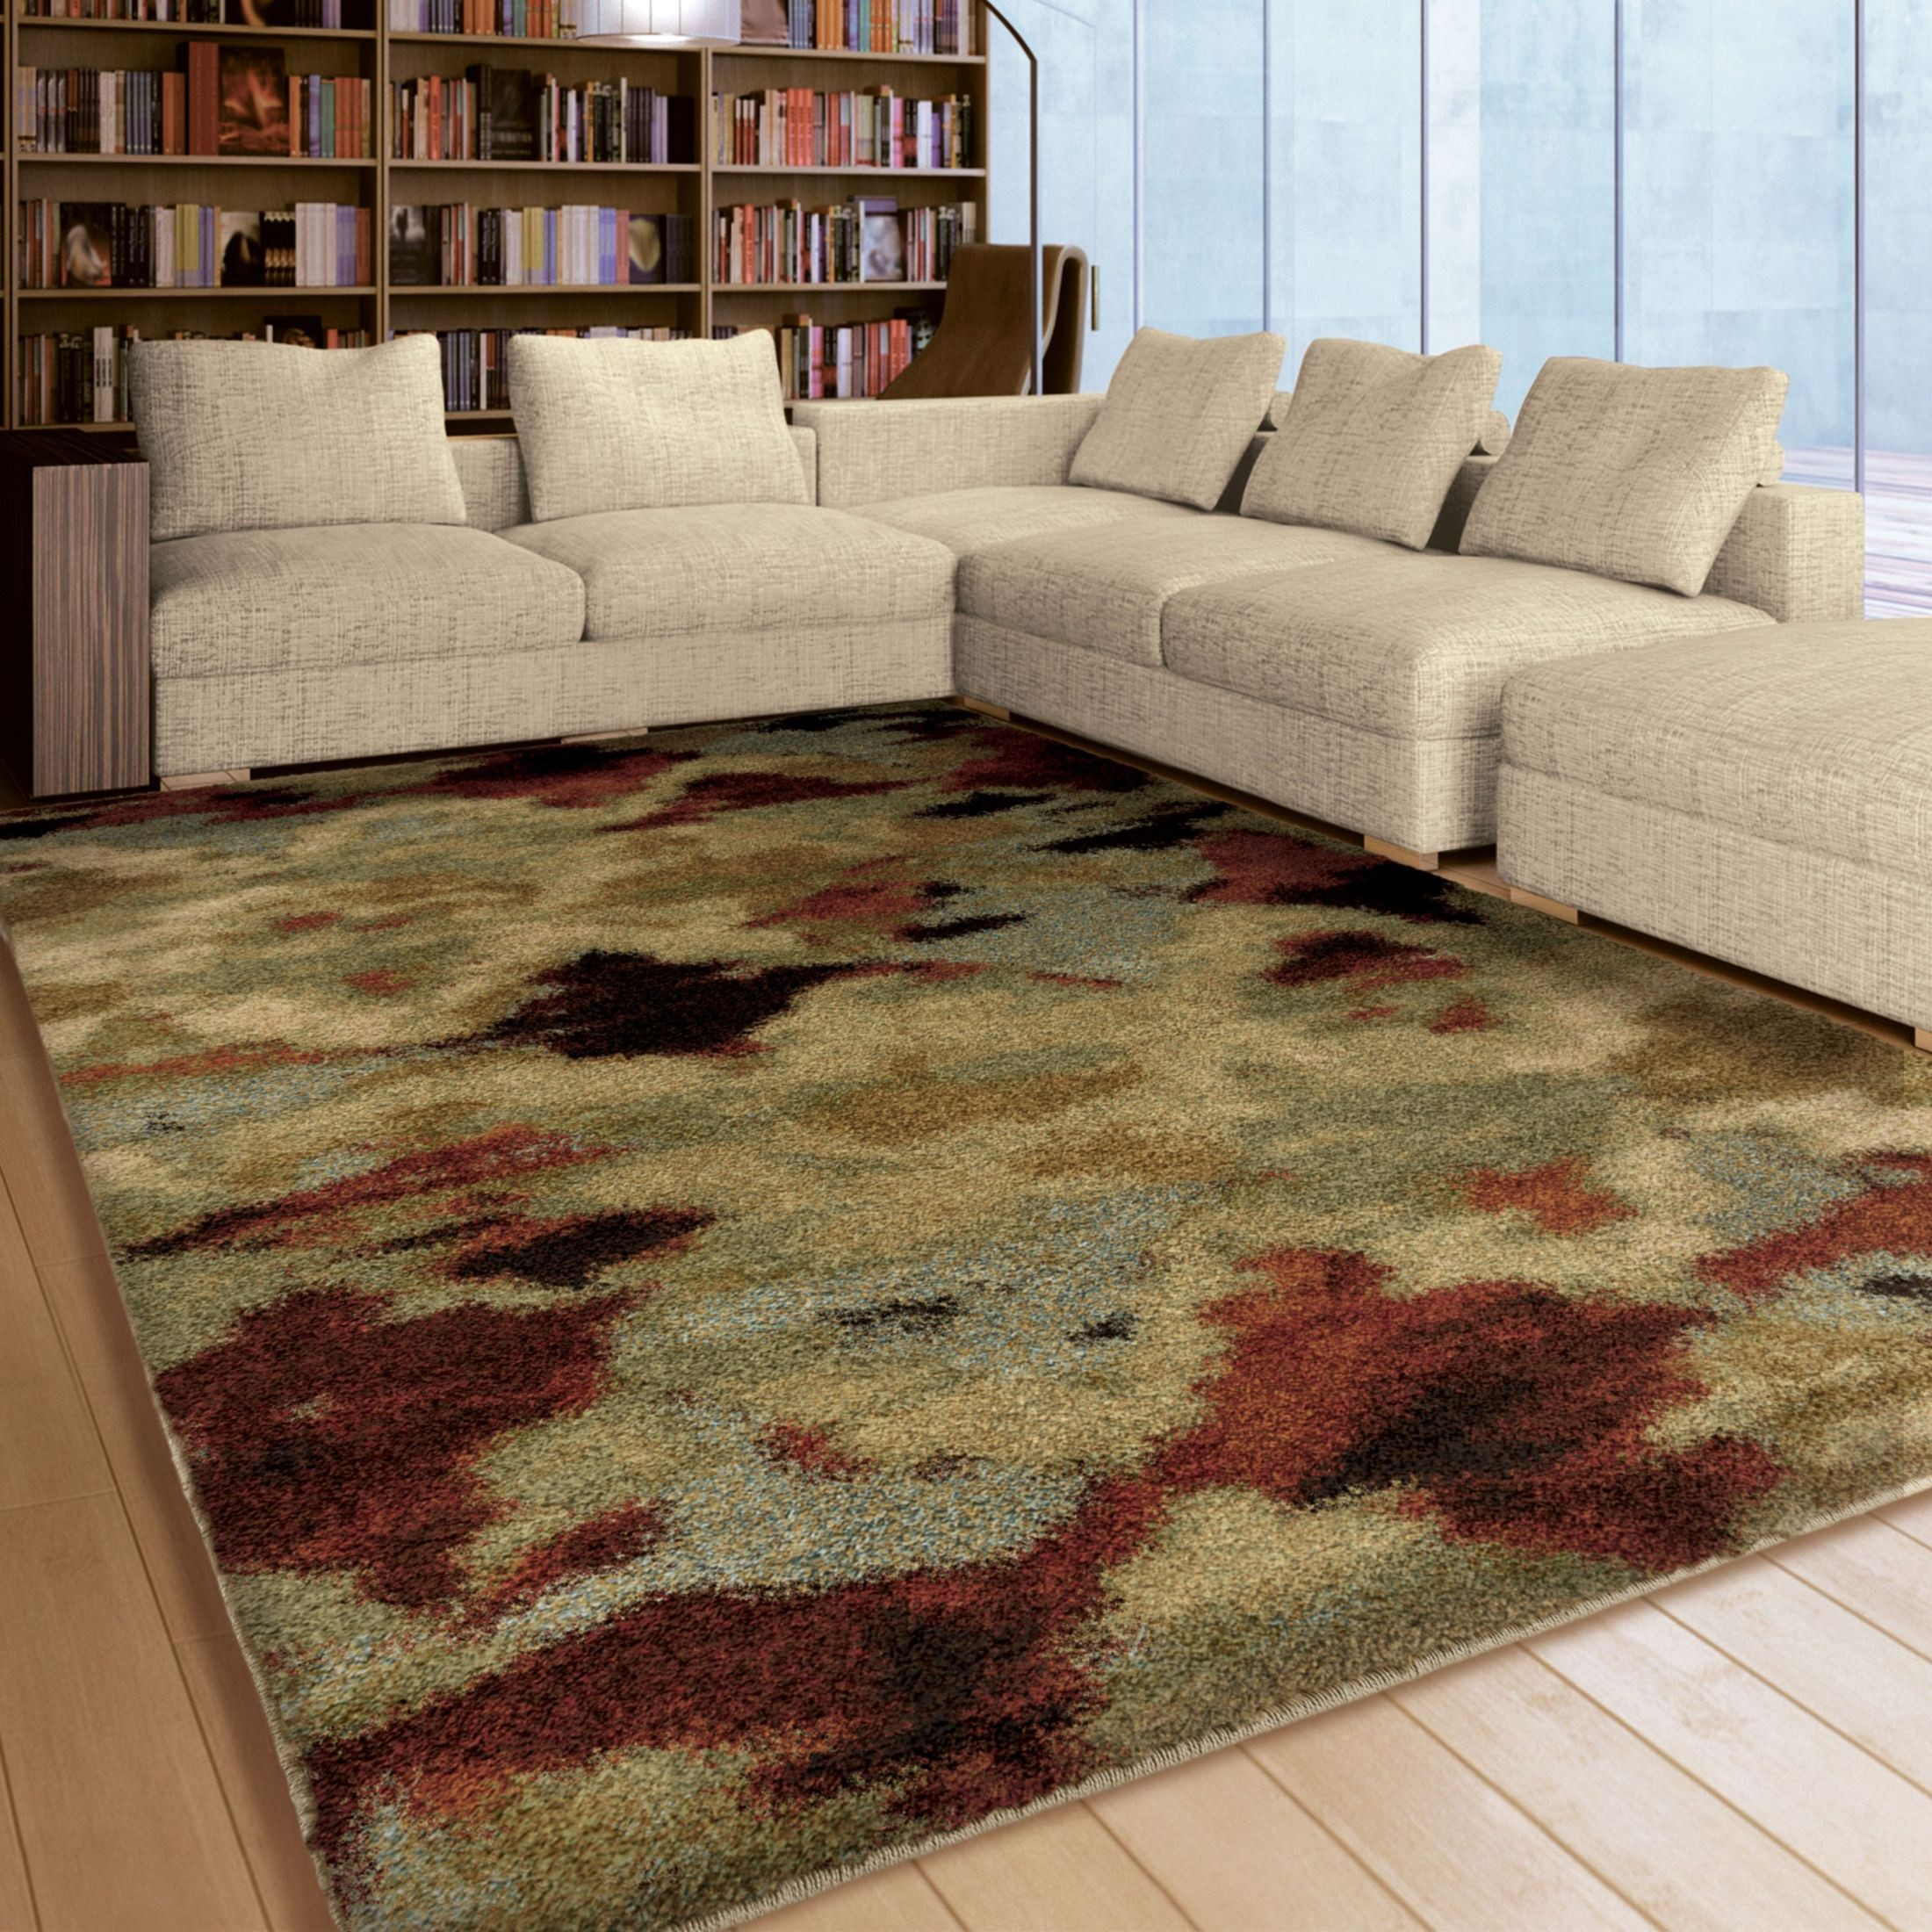 Huge Plush Rug: Orian Rugs Plush Abstract Harlequin Multi Area Large Rug